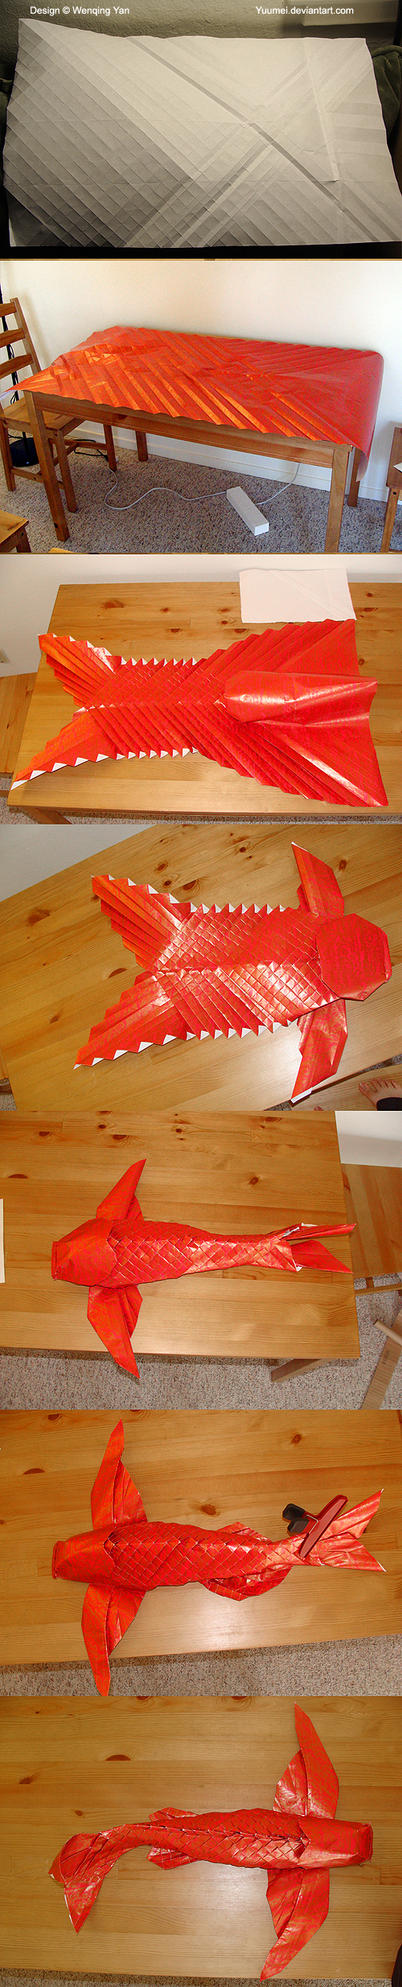 Origami winged koi process by yuumei on deviantart for Origami koi tutorial